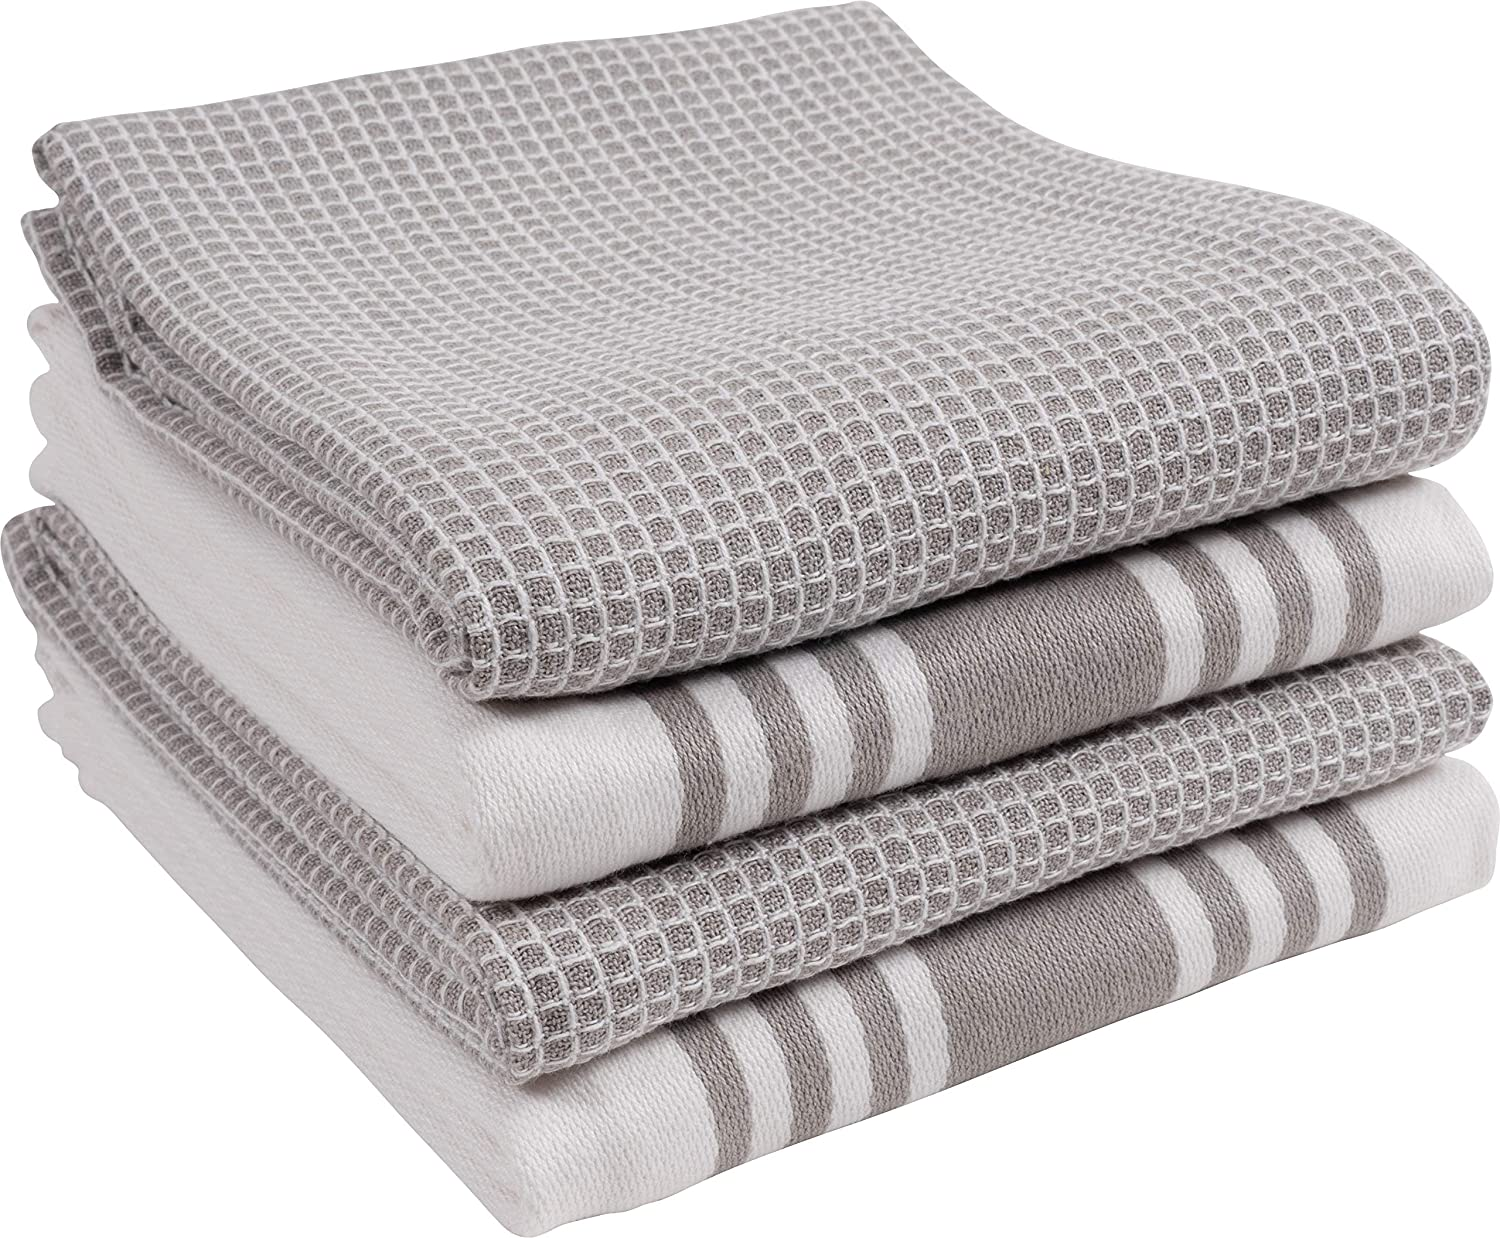 KAF Home KT-MADWF-DZ-S4 Centerband and Waffle Flat Absorbent, Durable, Soft, and Beautiful Towels | Perfect for Kitchen Messes and Drying Dishes, 18 x 28 - Inches Drizzle